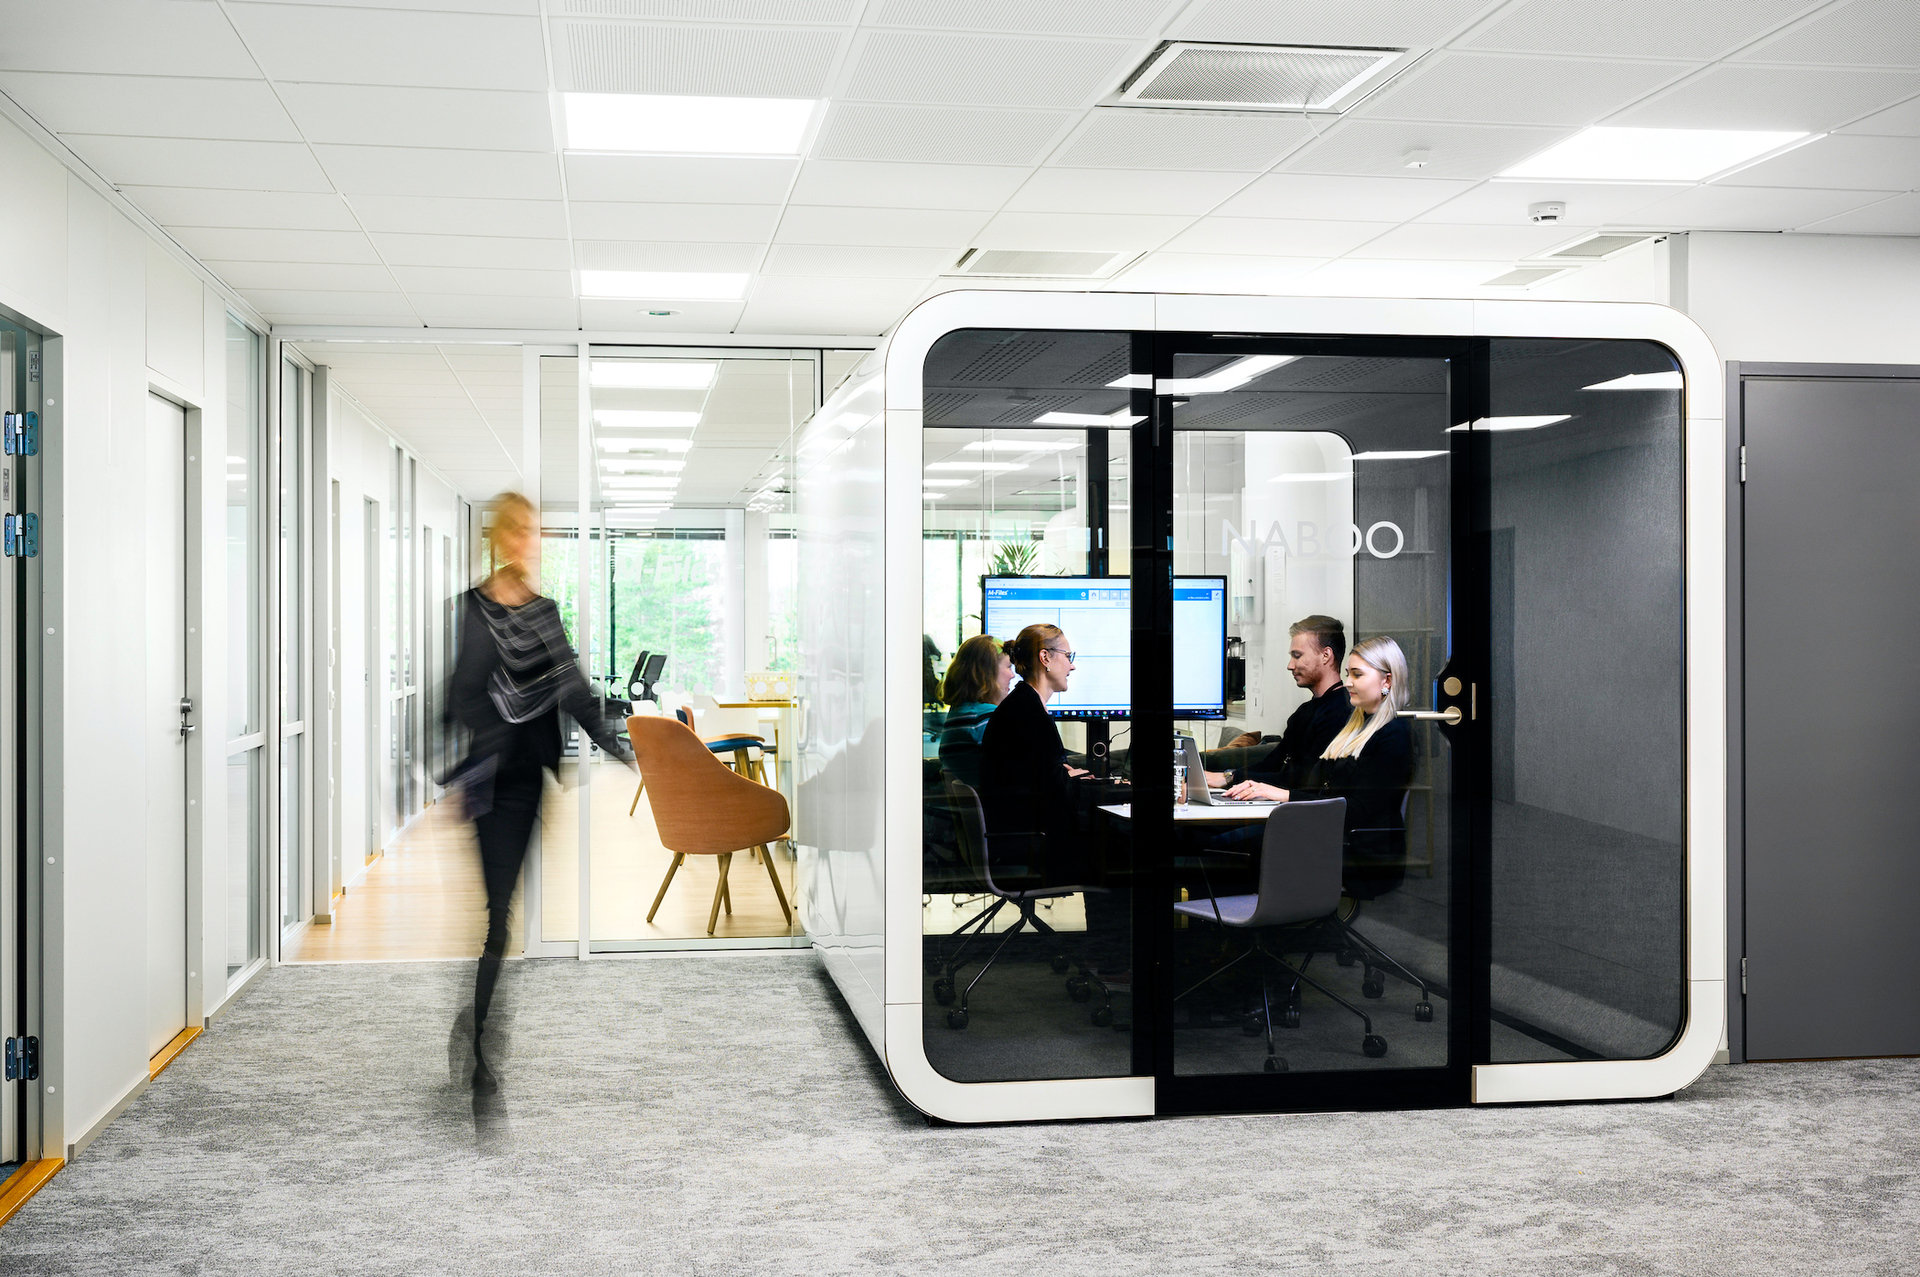 The much admired signature design of Framery pods and office phone booths fit naturally in open offices. Our color schemes and accessories to fit all styles and needs, while sustainable high-quality materials guarantee a quality user experience.